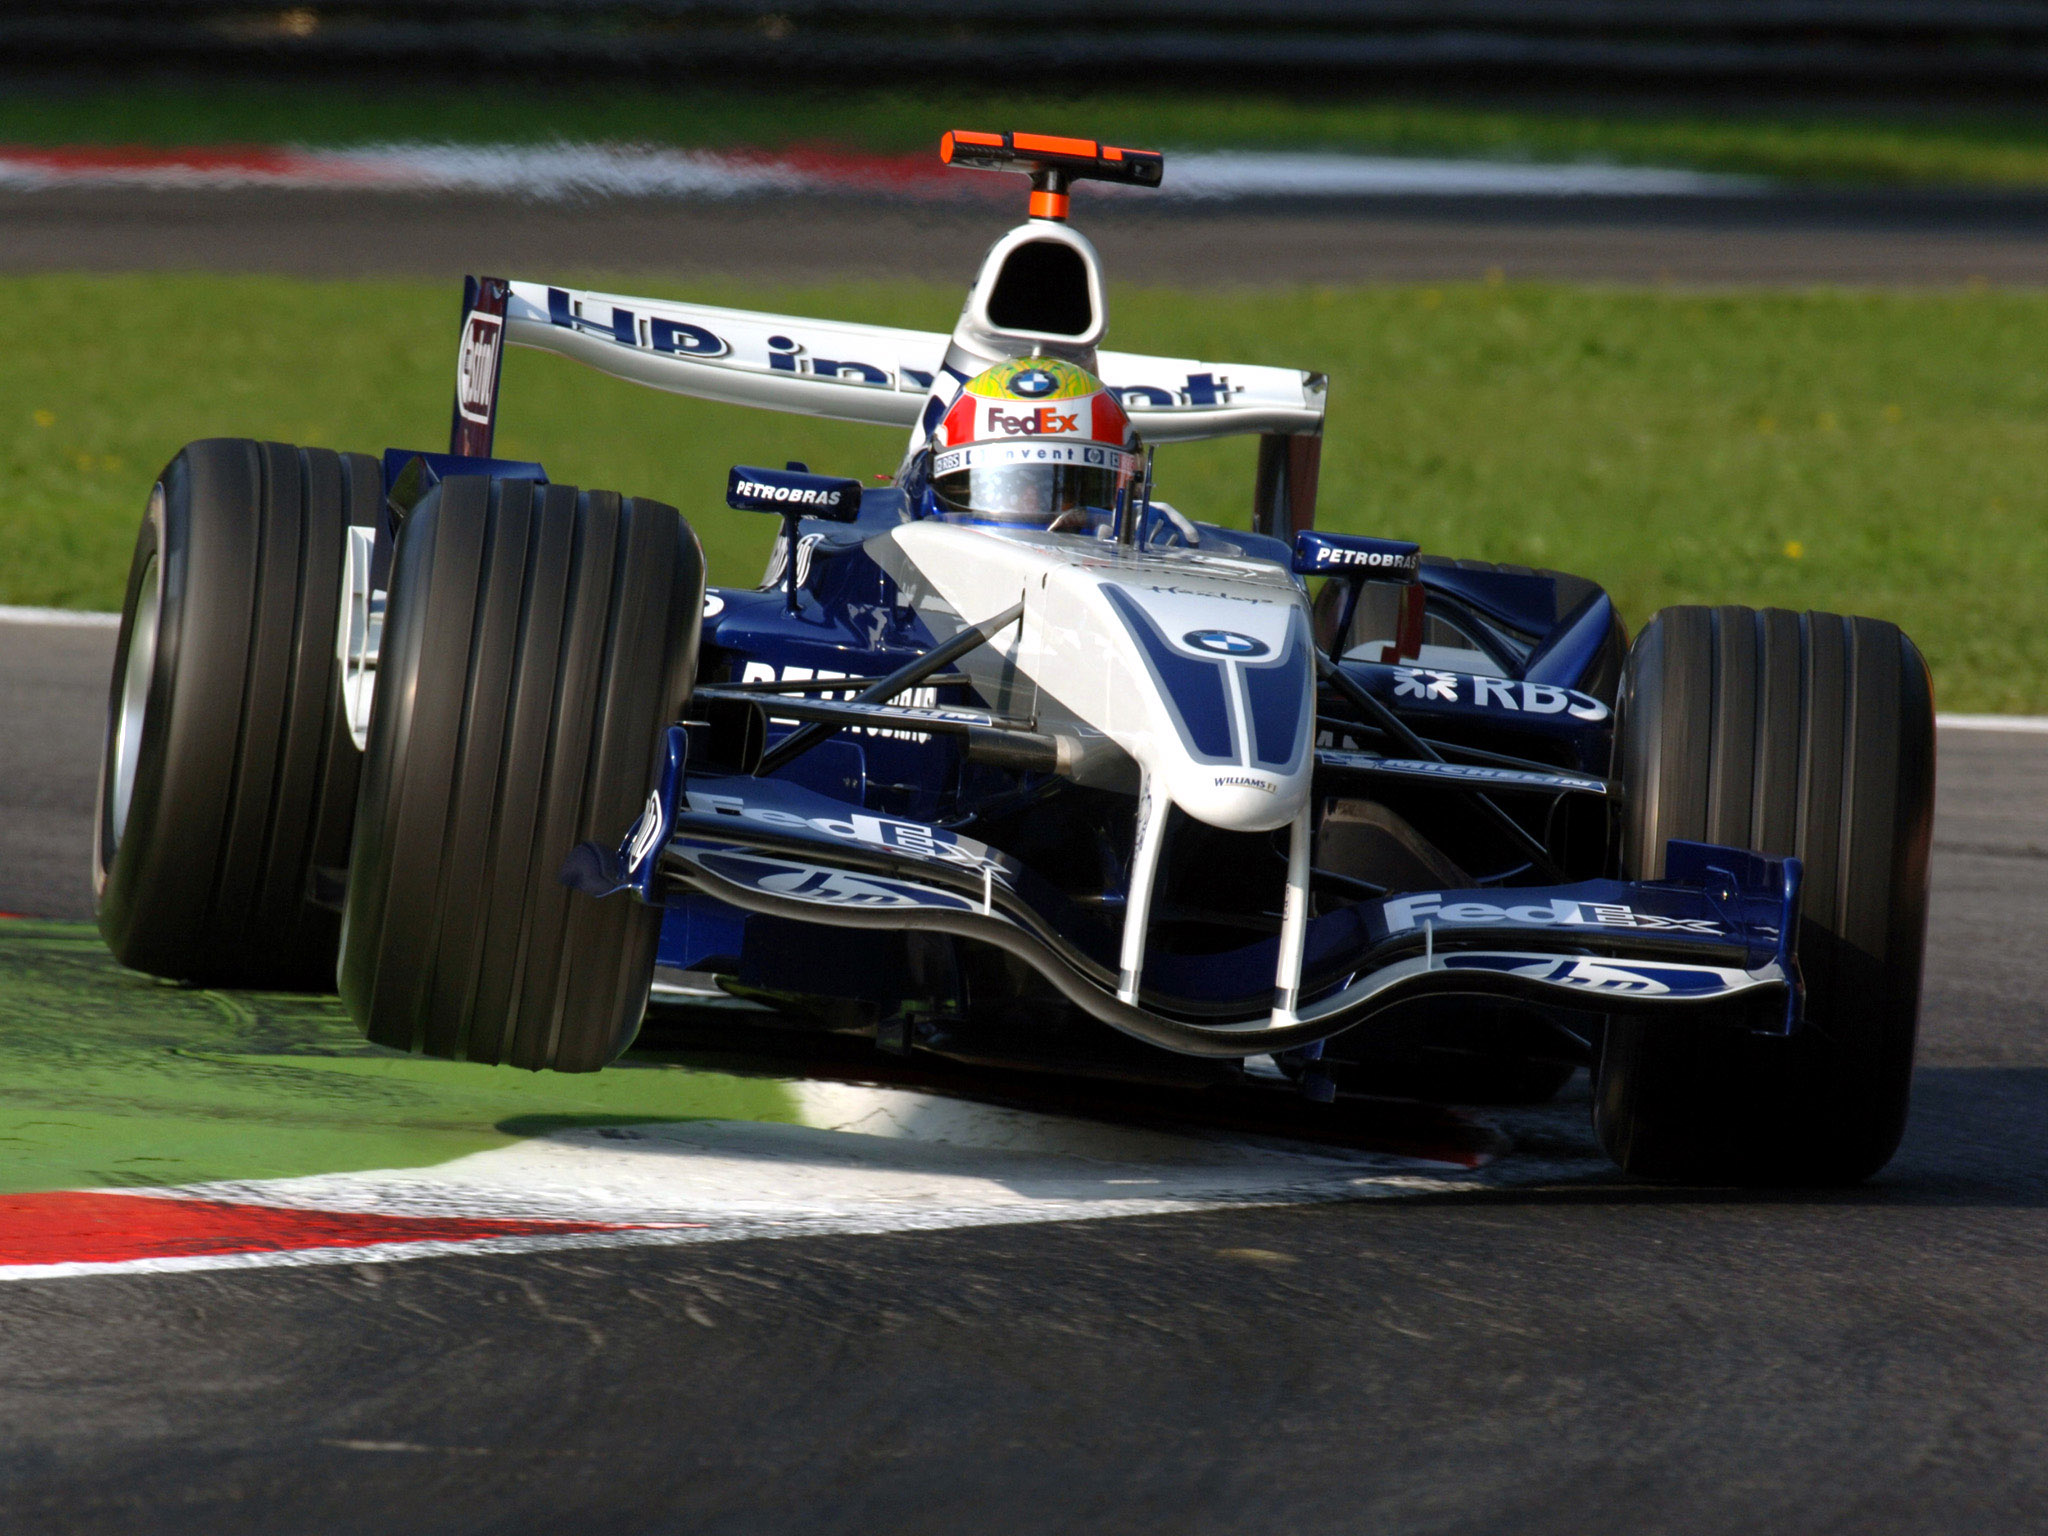 Williams fw27 photo - 7